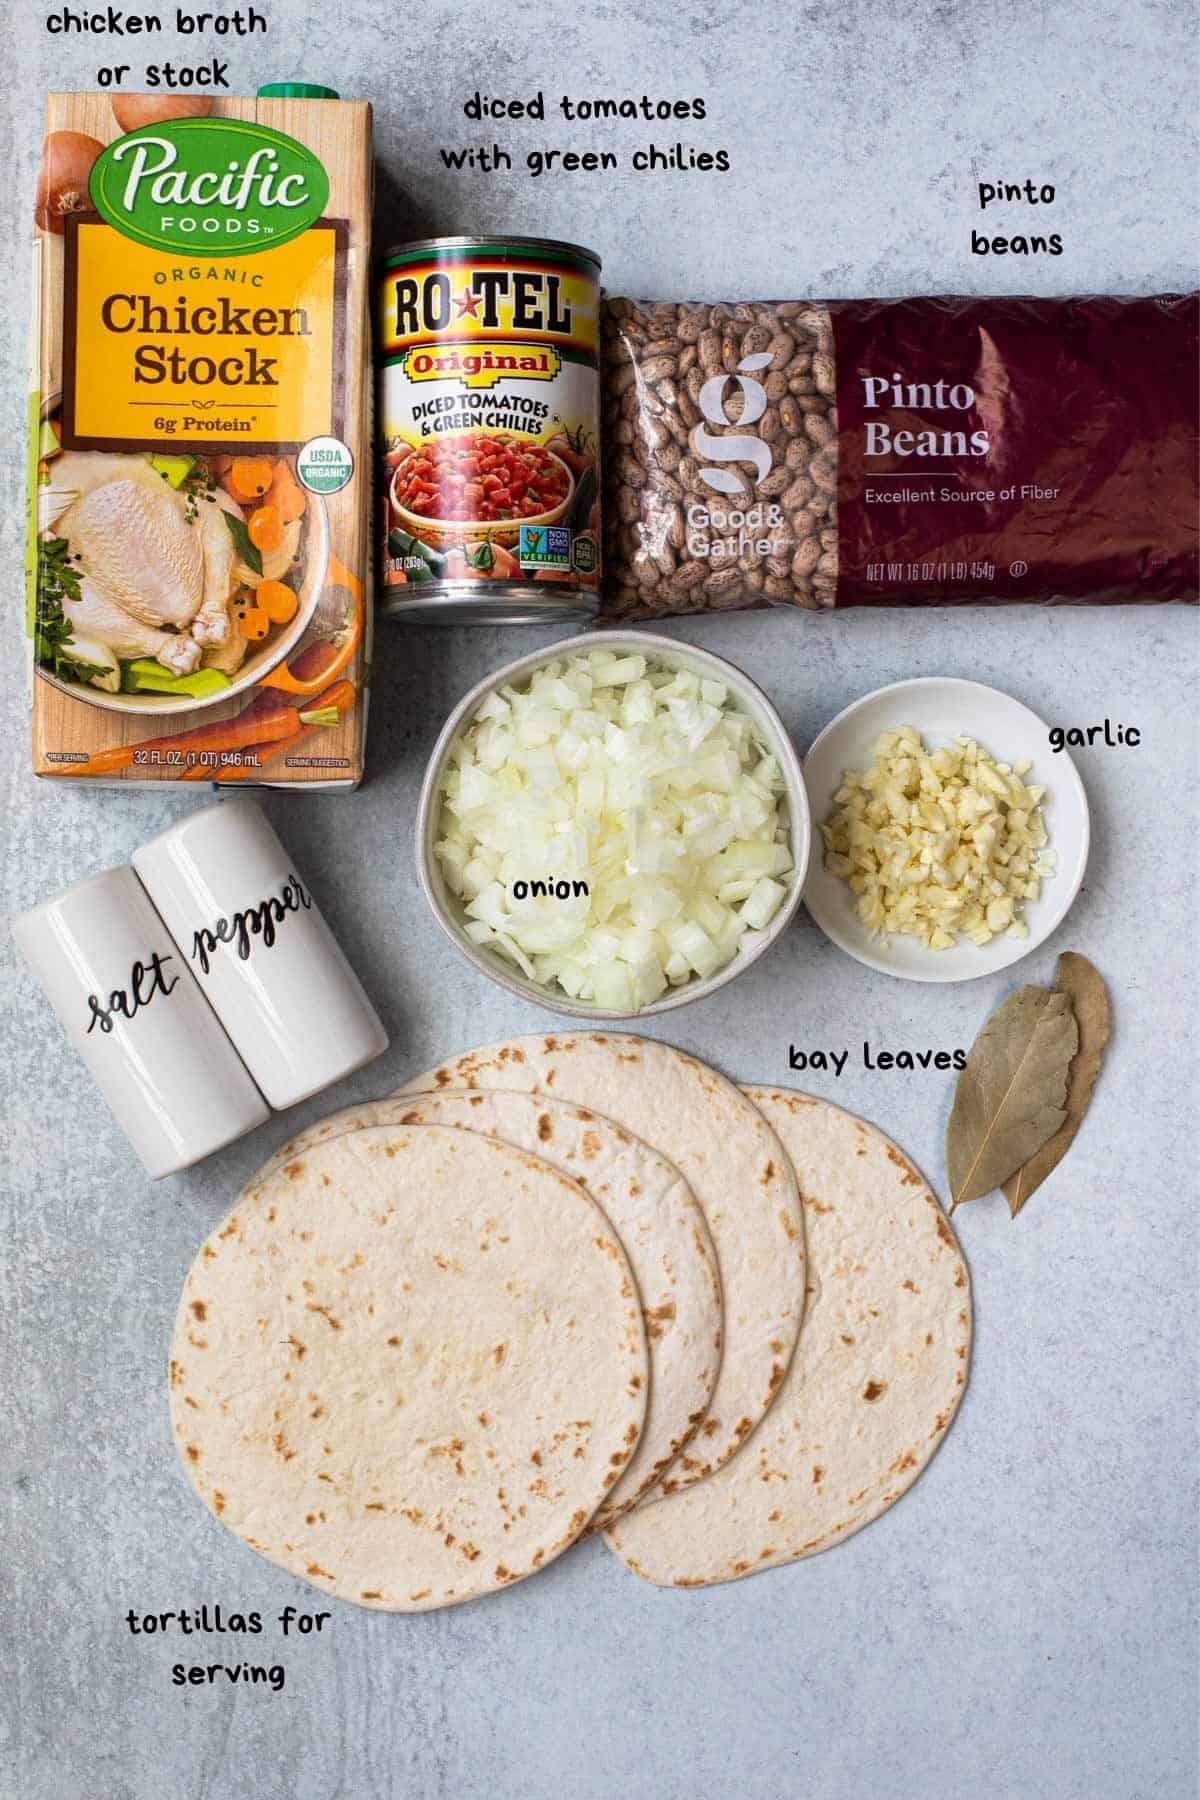 flat lay view of ingredients like chicken broth, chopped onions and garlic